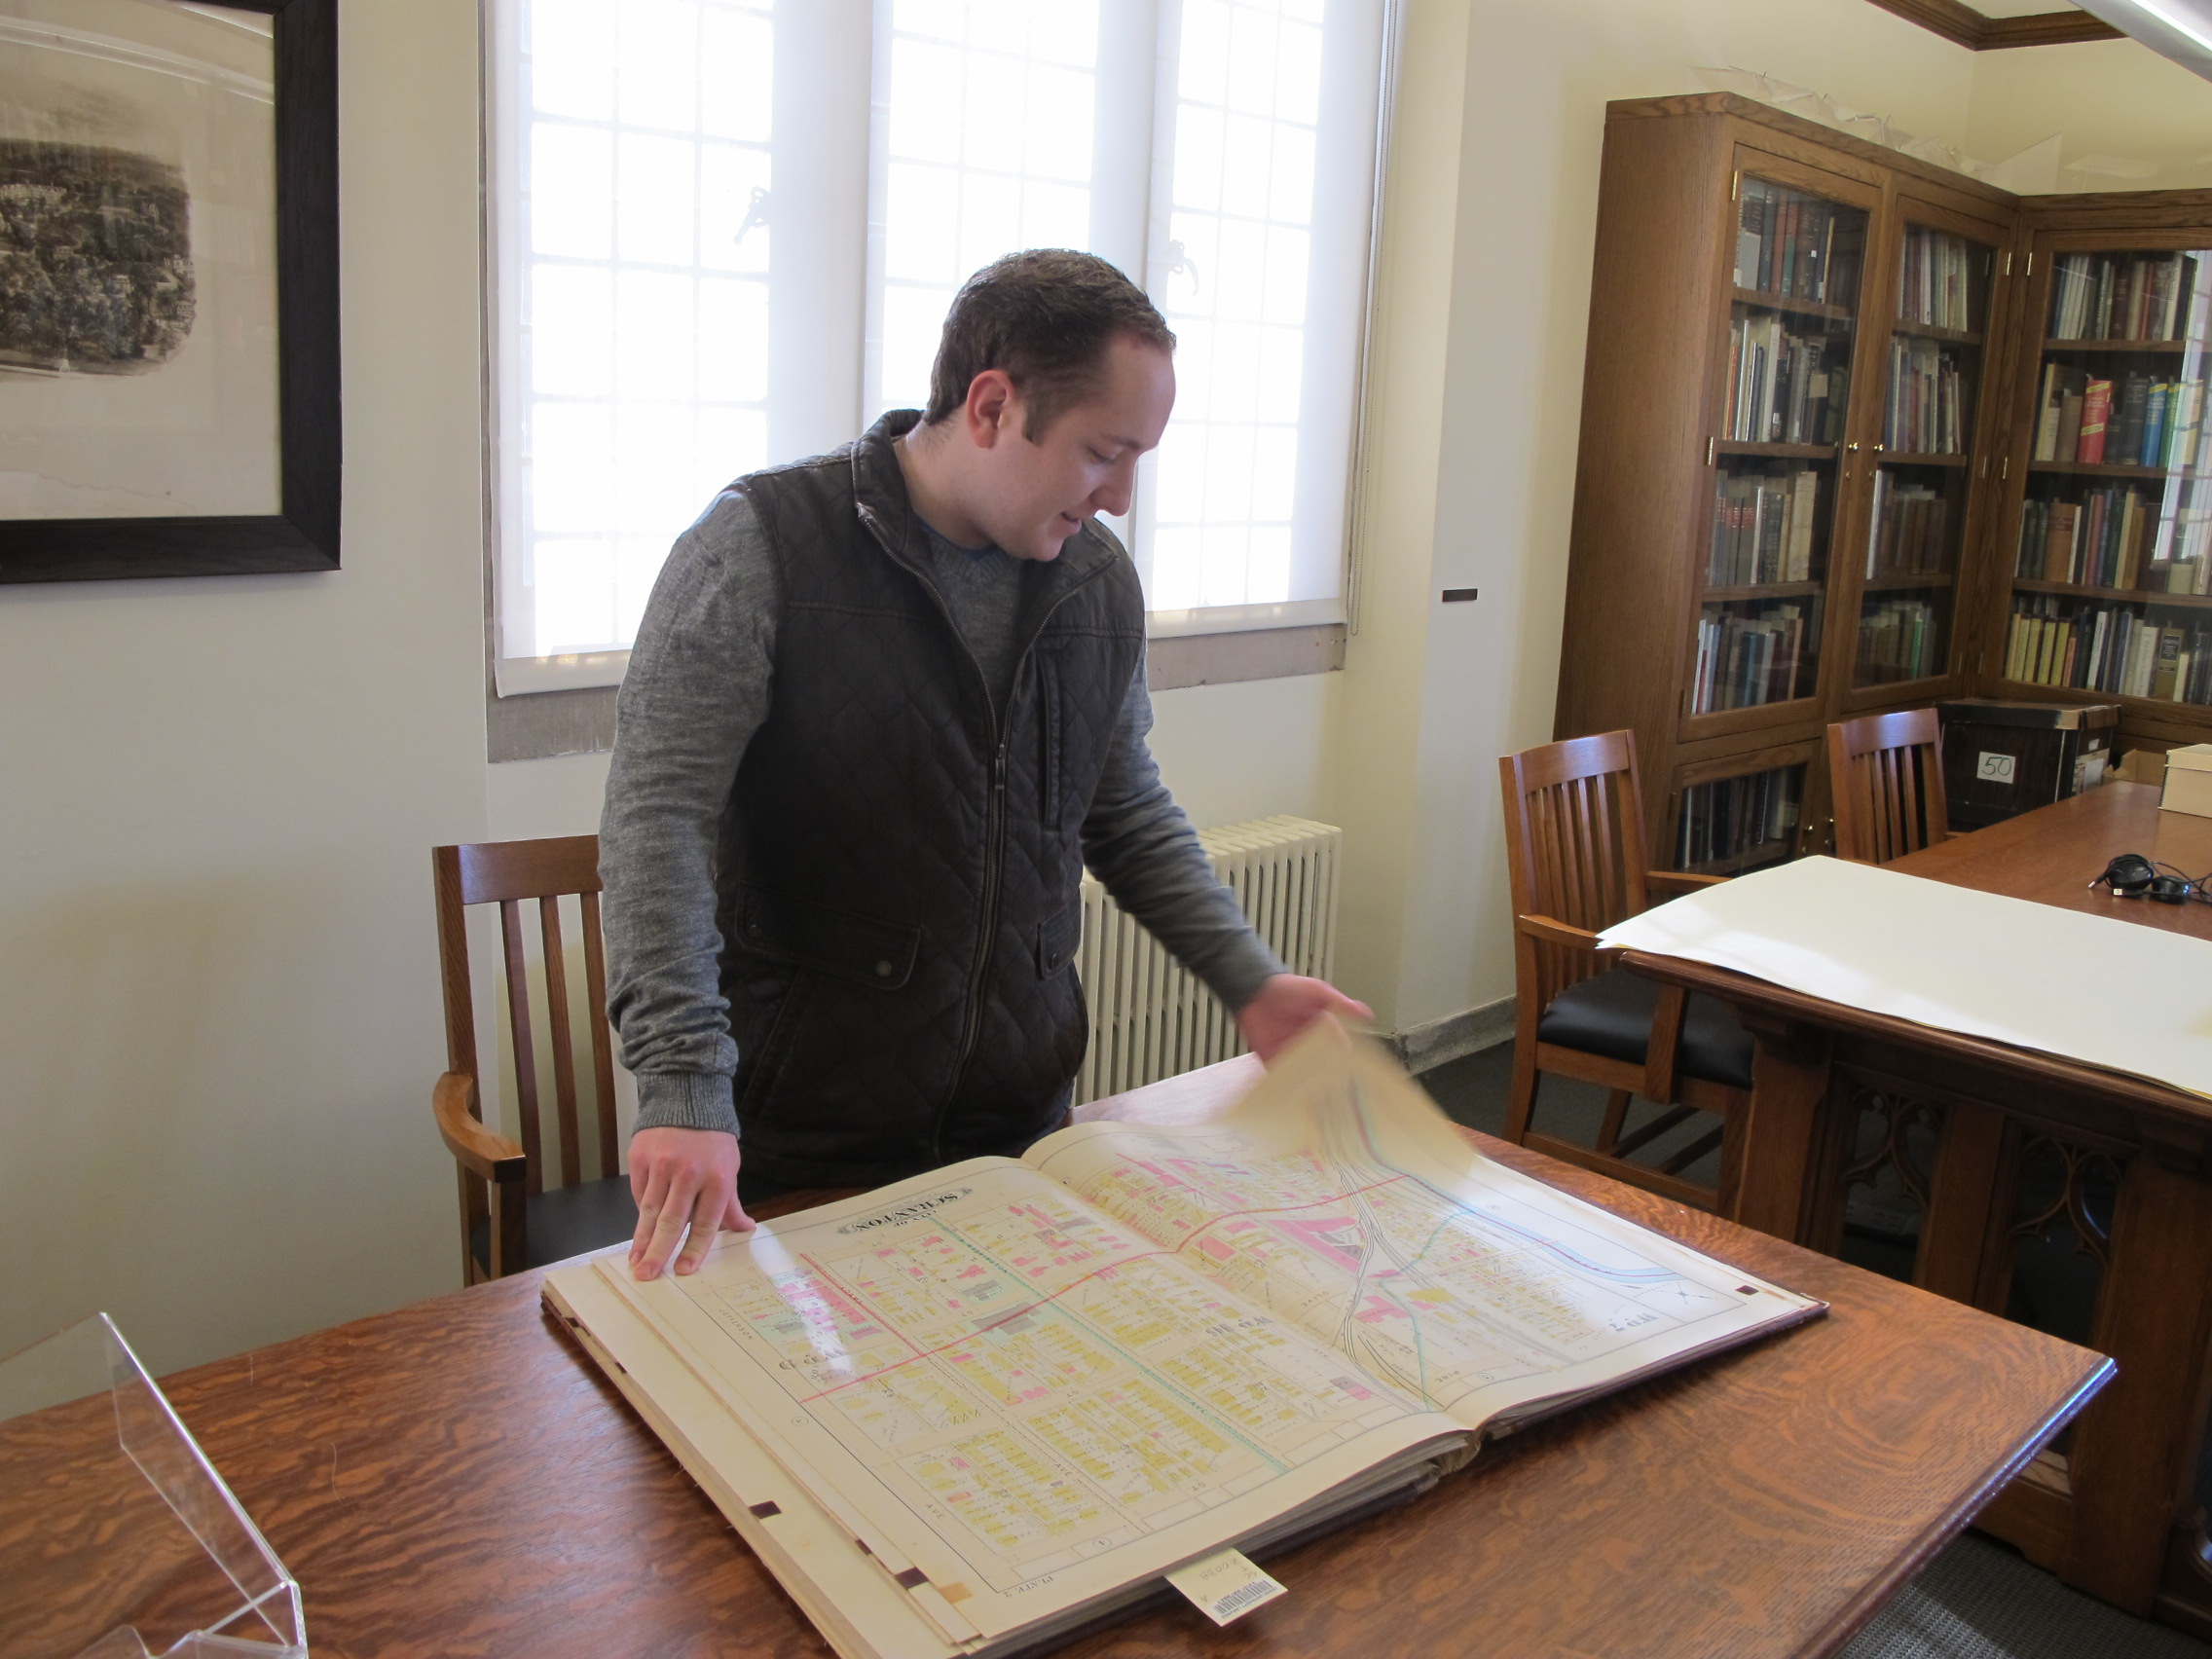 Vito Scocozzo Special Collections student employee